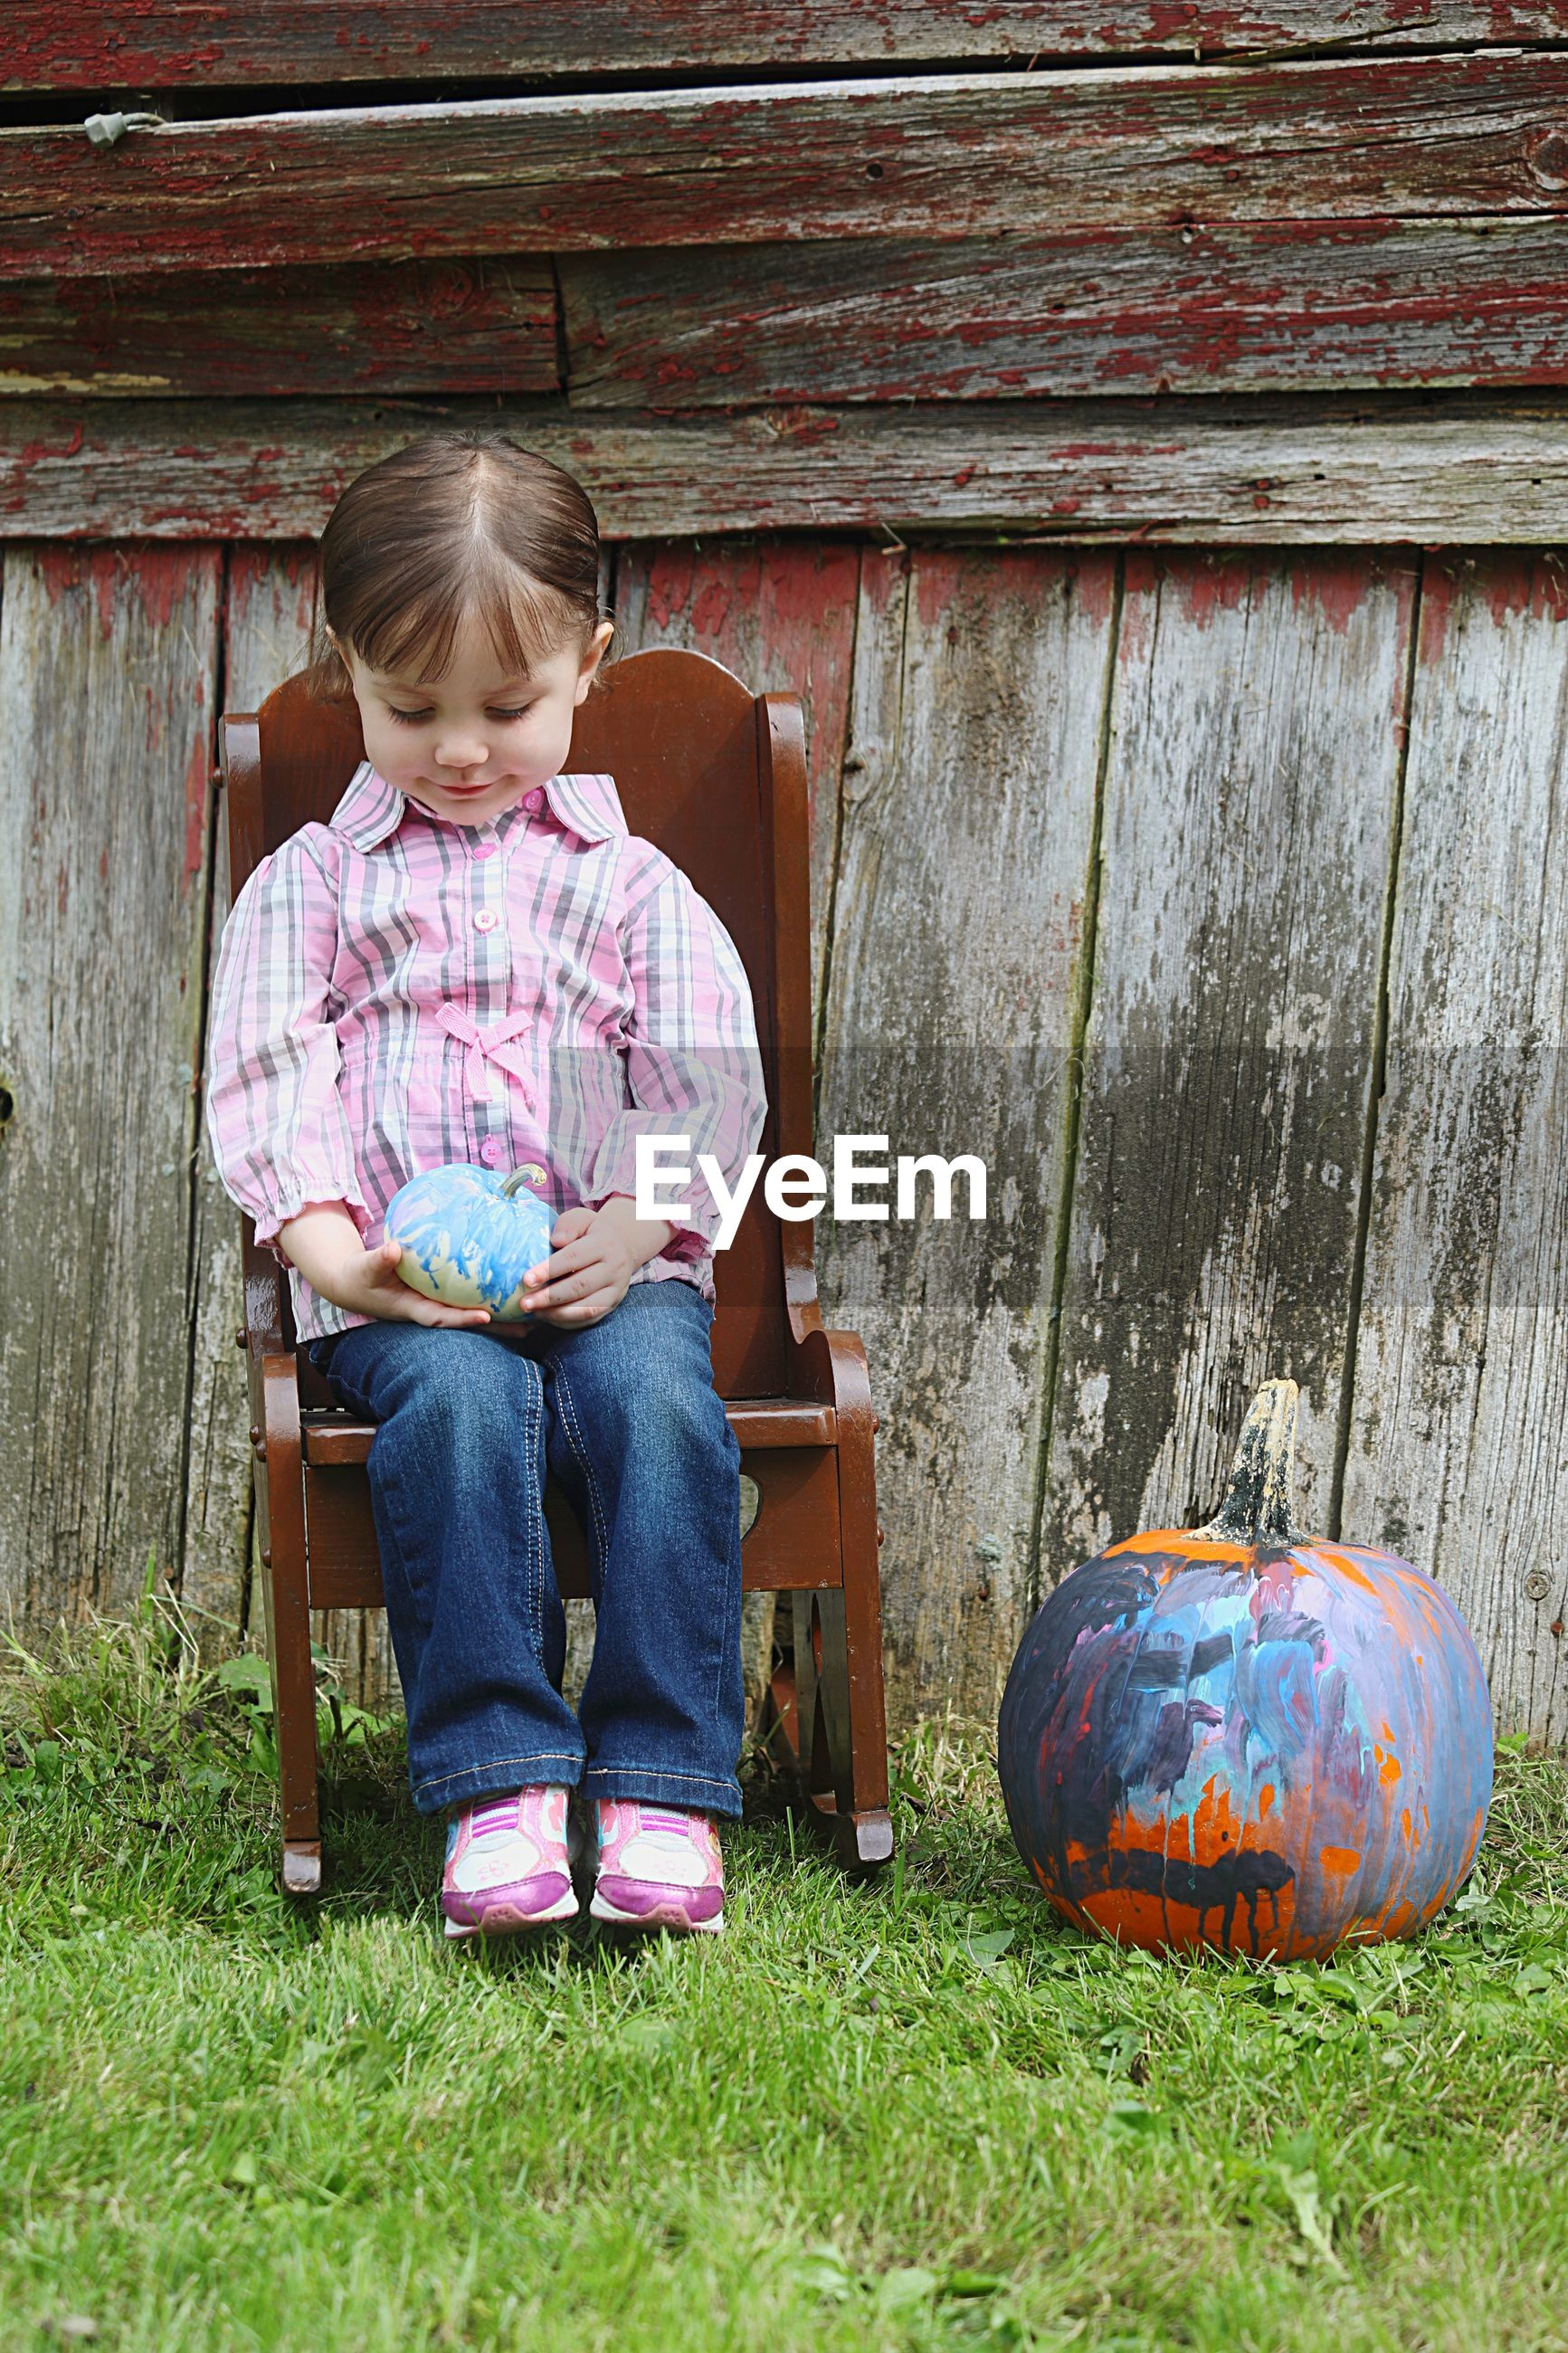 Full length of girl sitting on chair by pumpkin during halloween